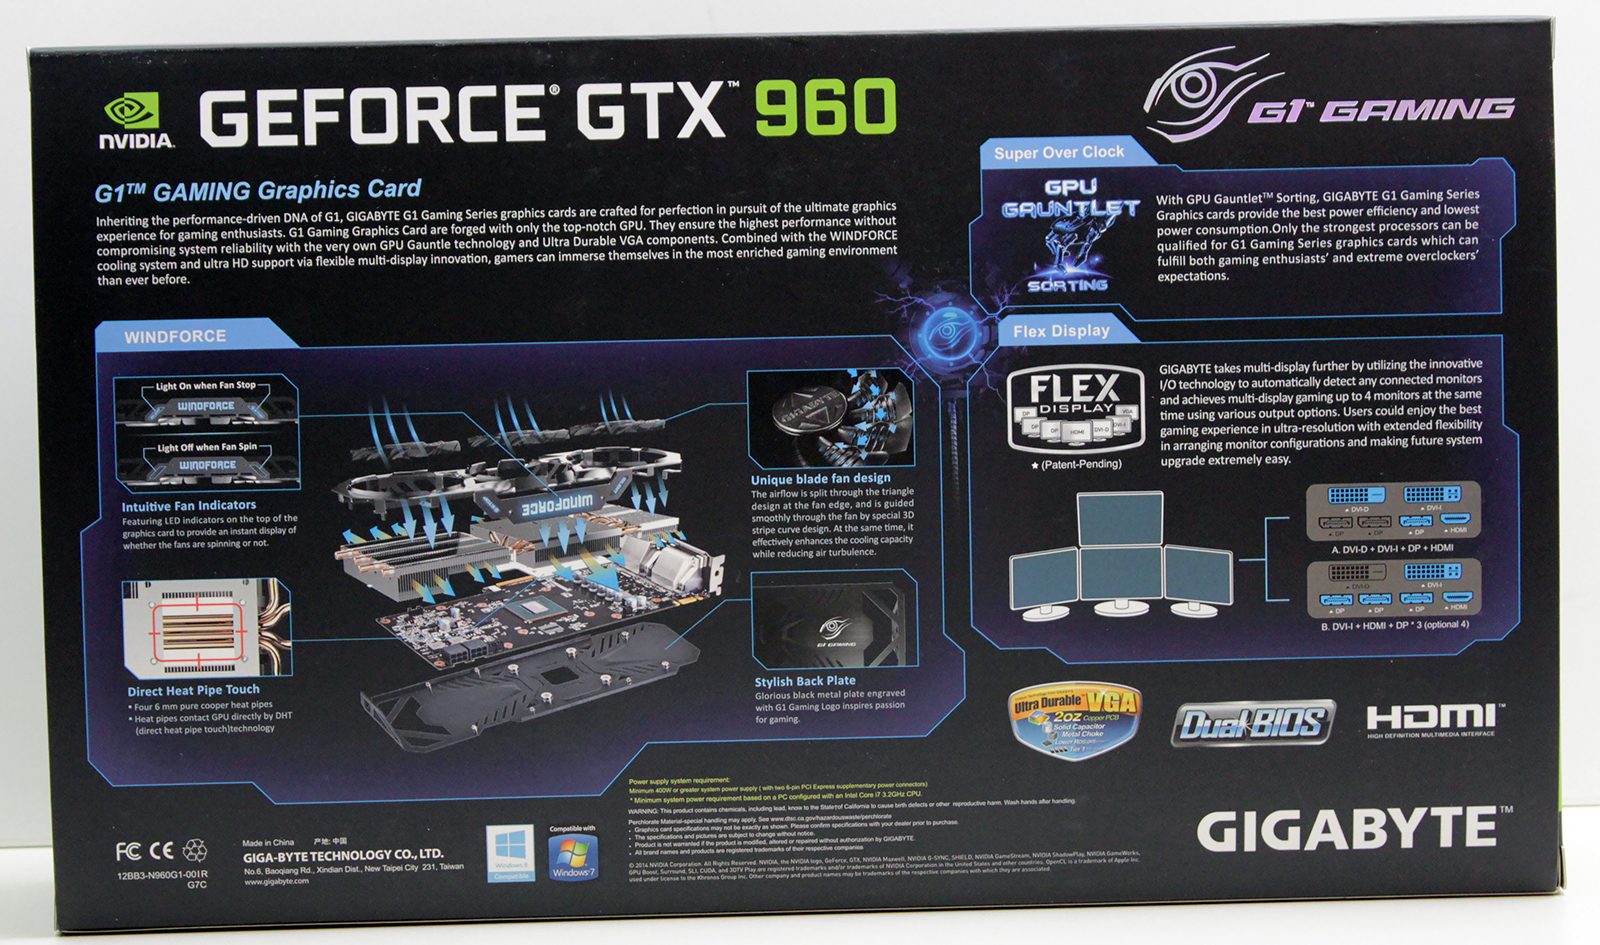 3 Gigabyte GTX 960 G1 Gaming box